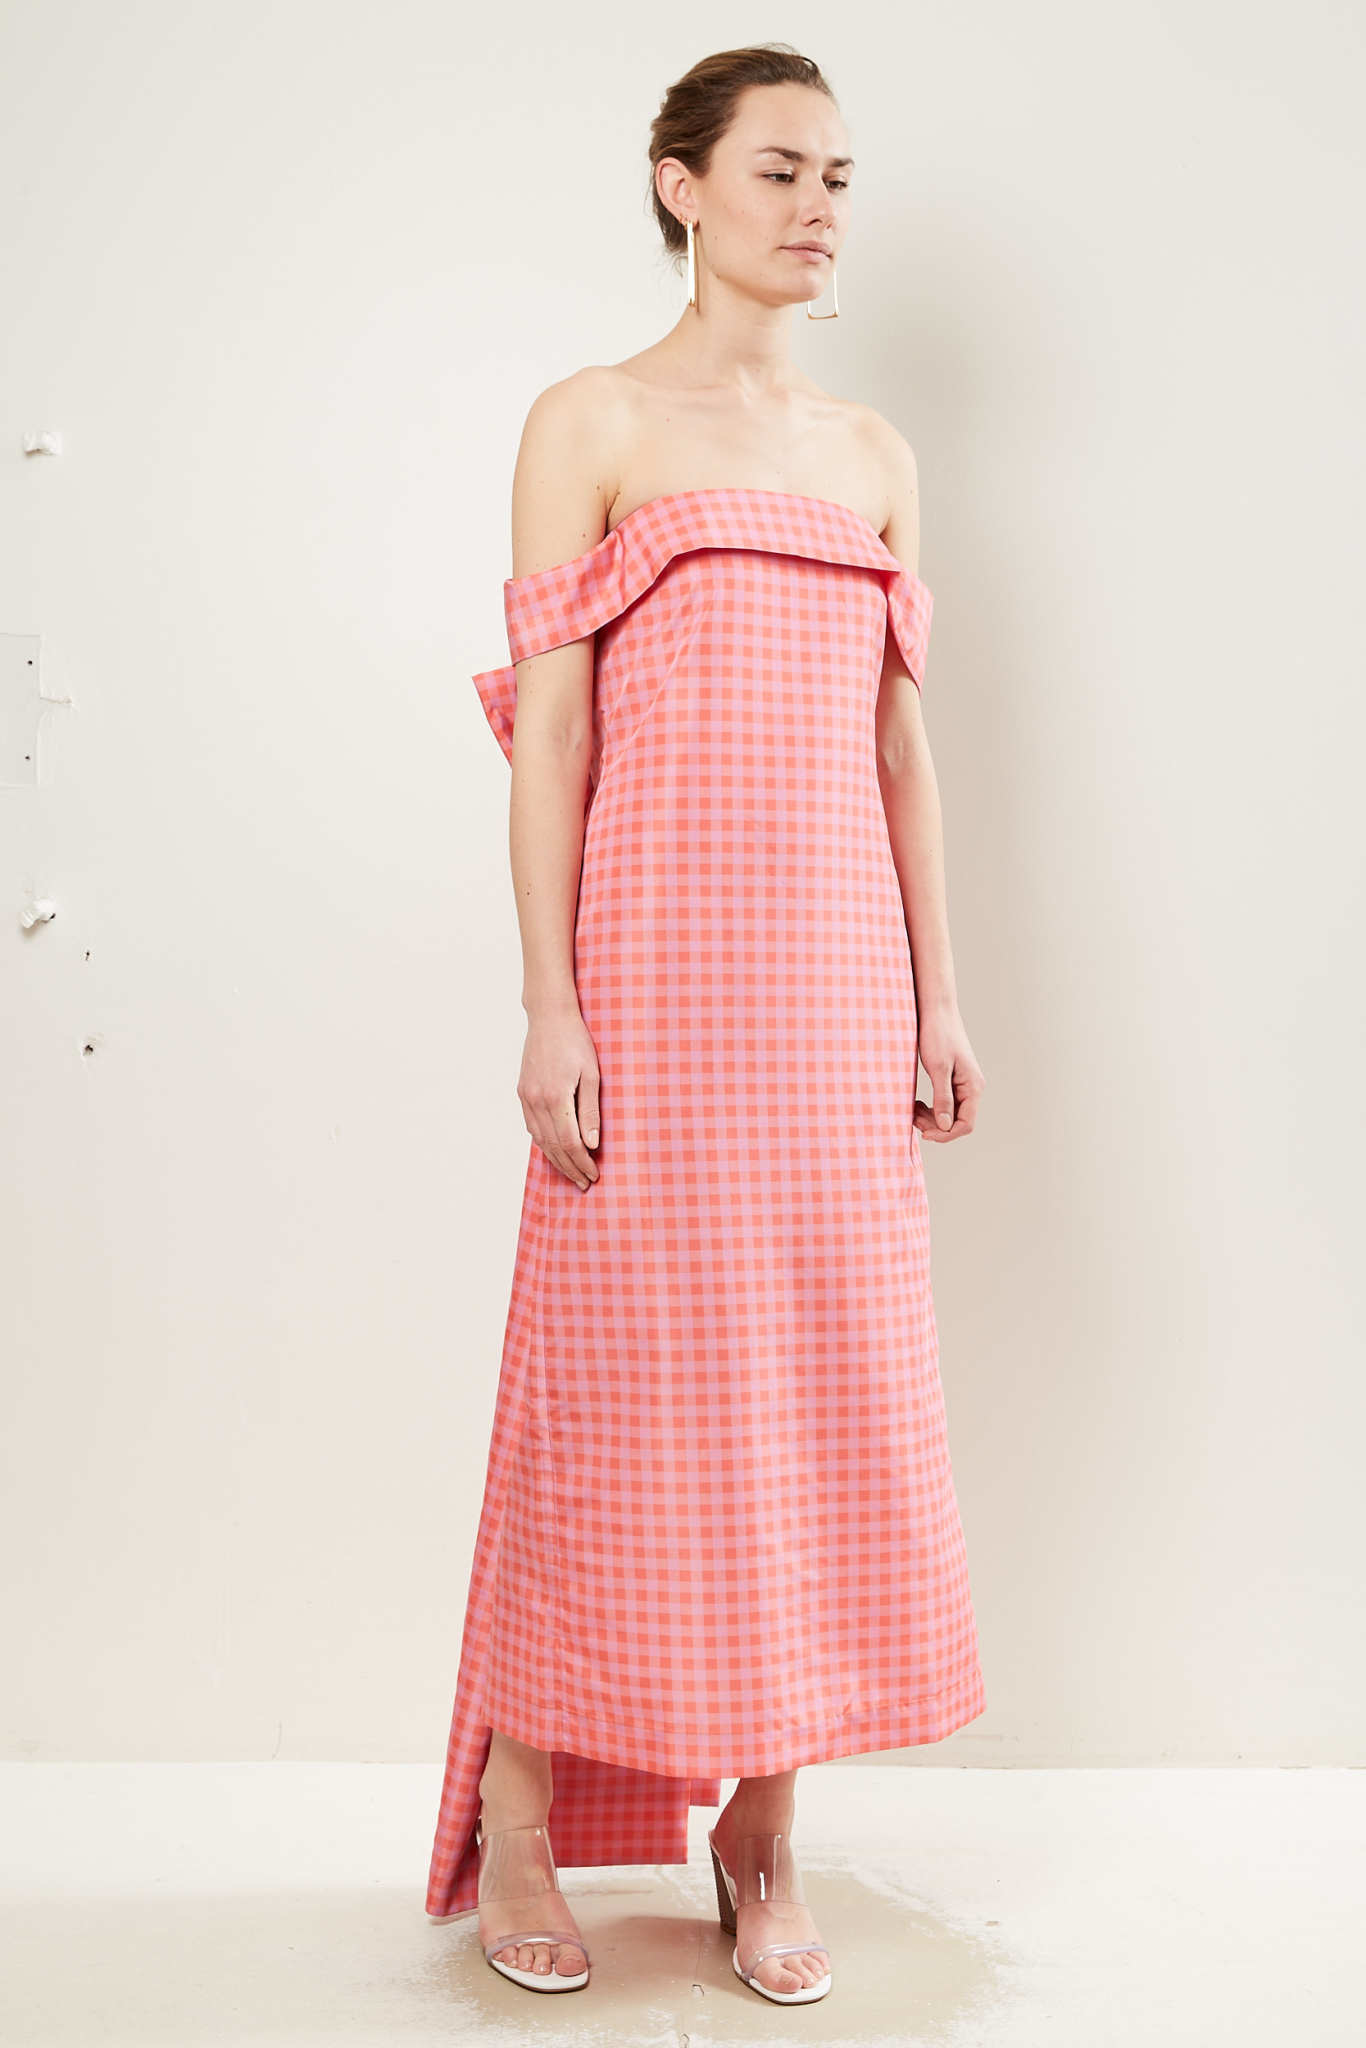 Bernadette - Julia taffeta dress.